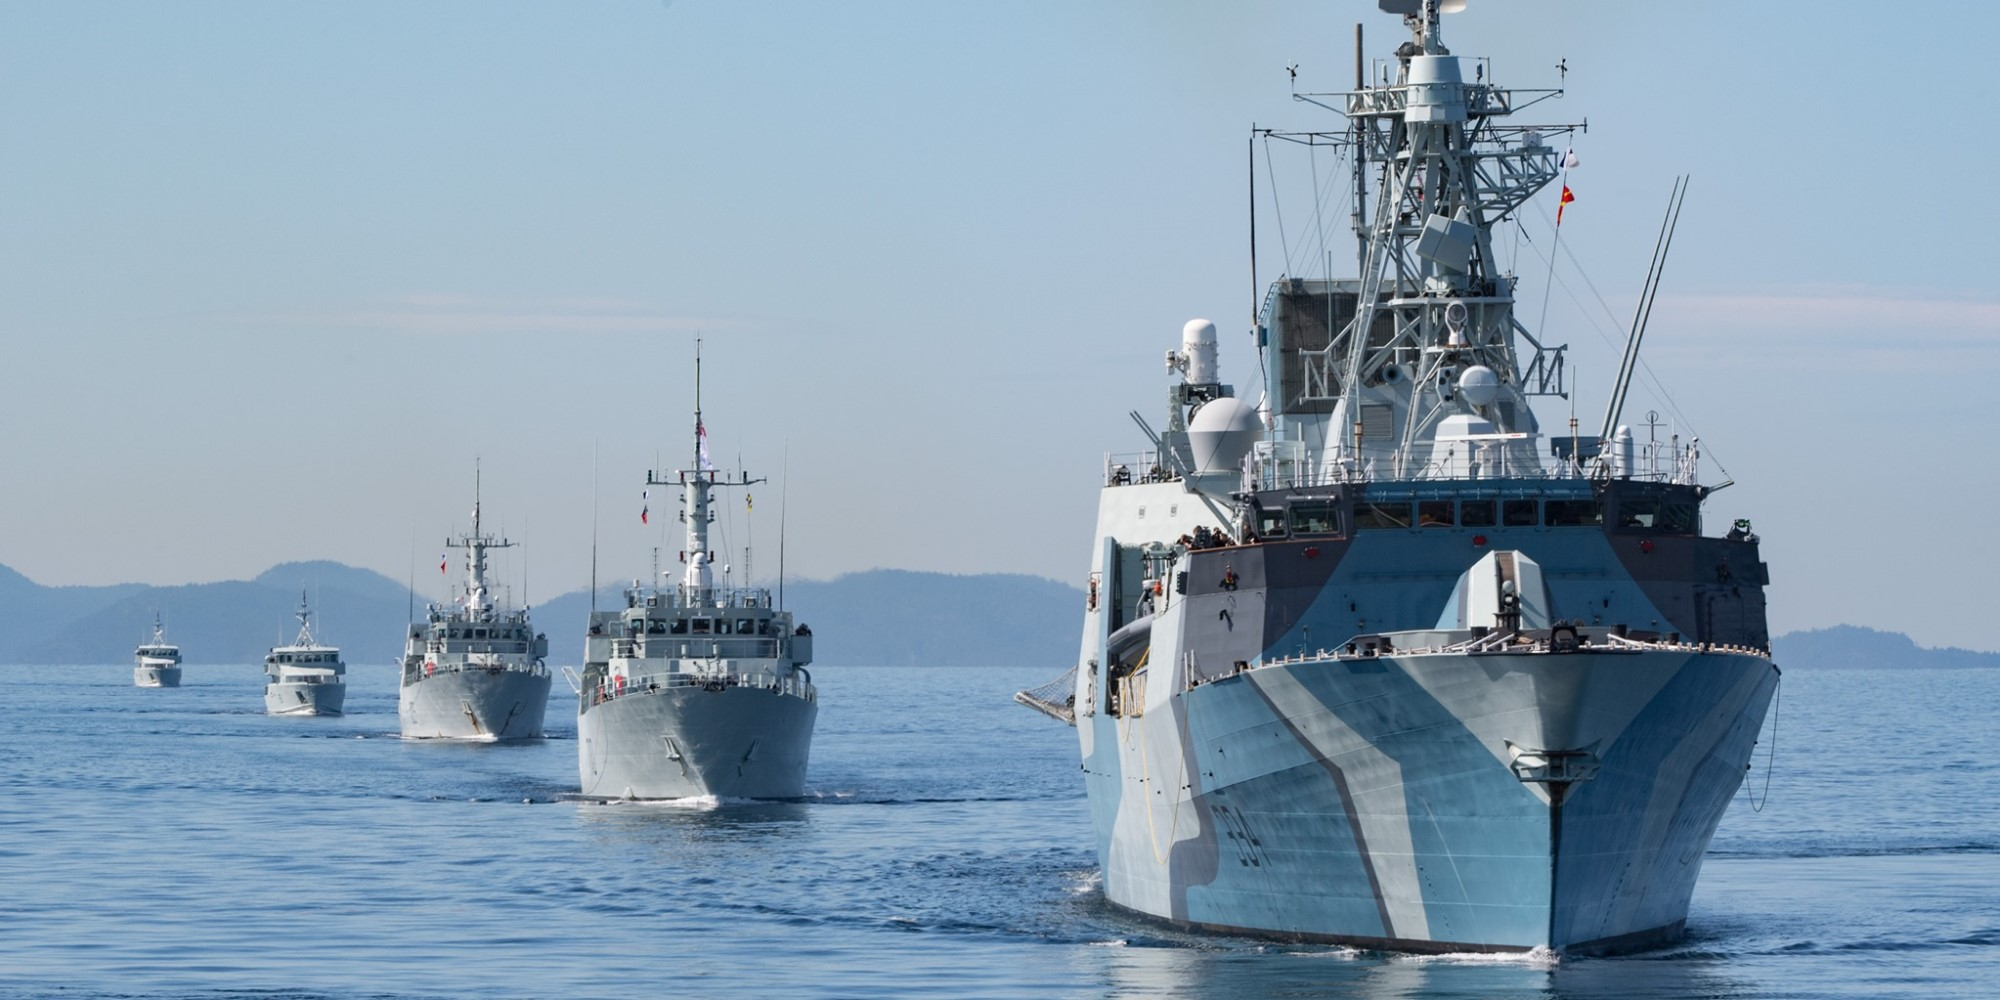 Much of Canada's Pacific Fleet Now Circling the Waters off Vancouver Island to Avoid Coronavirus